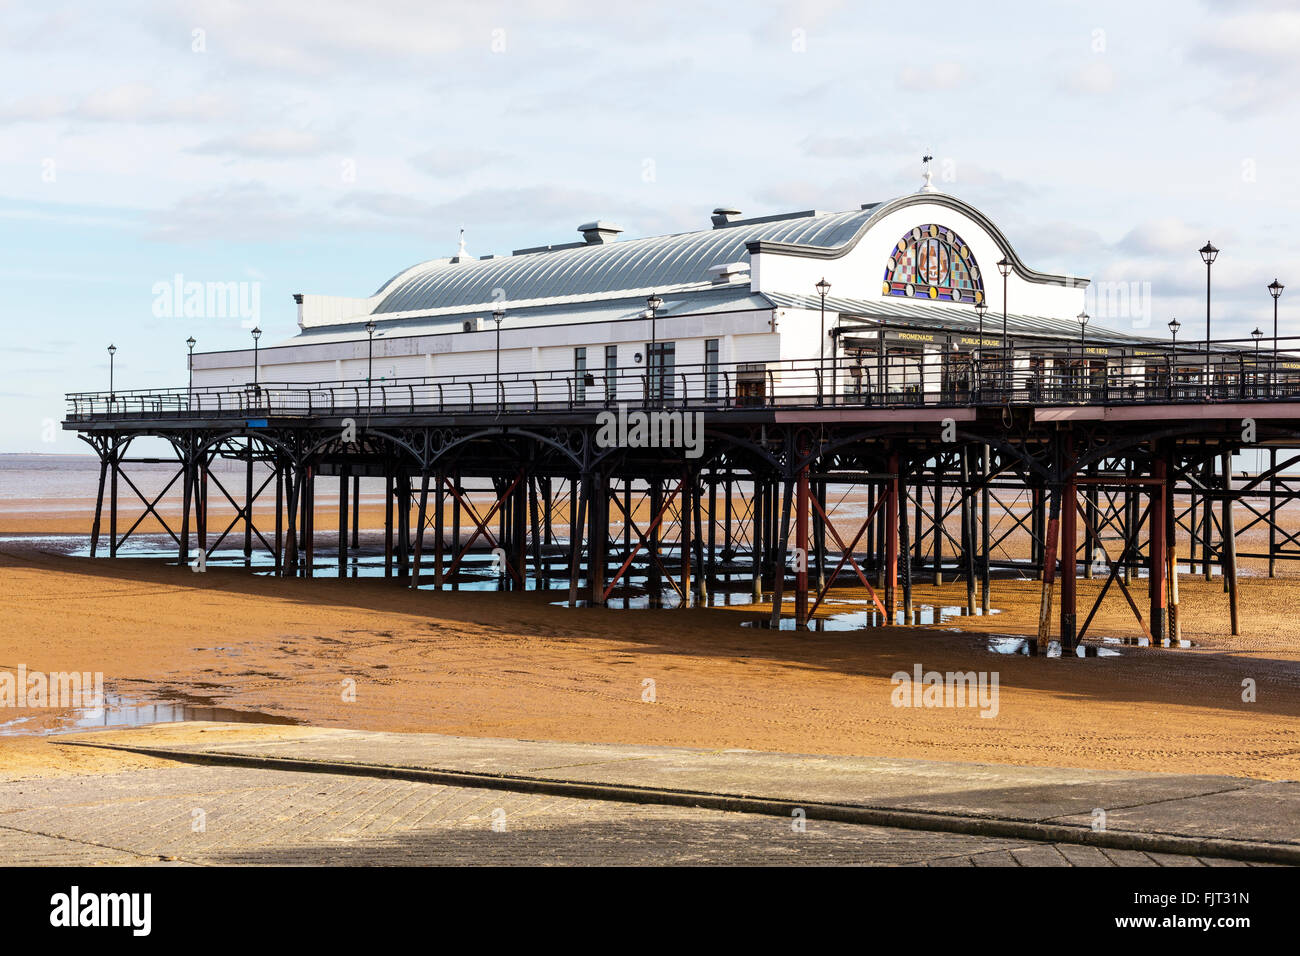 Cleethorpes pier UK England building exterior beach sand tide out - Stock Image